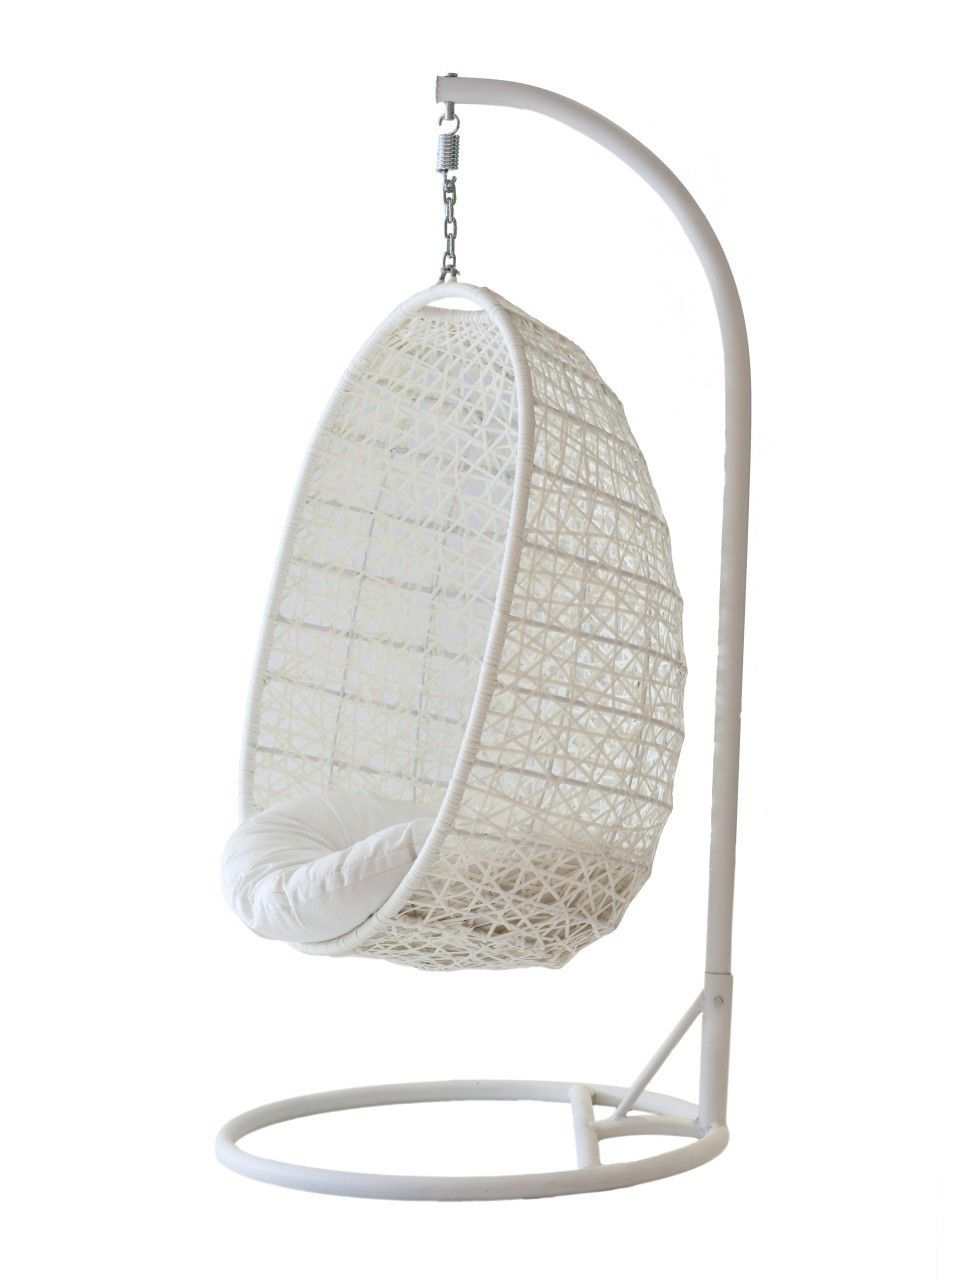 Egg Chairs That Hang From The Ceiling Affordable Hanging Chair For Bedroom Ikea Cool Hanging Chairs For